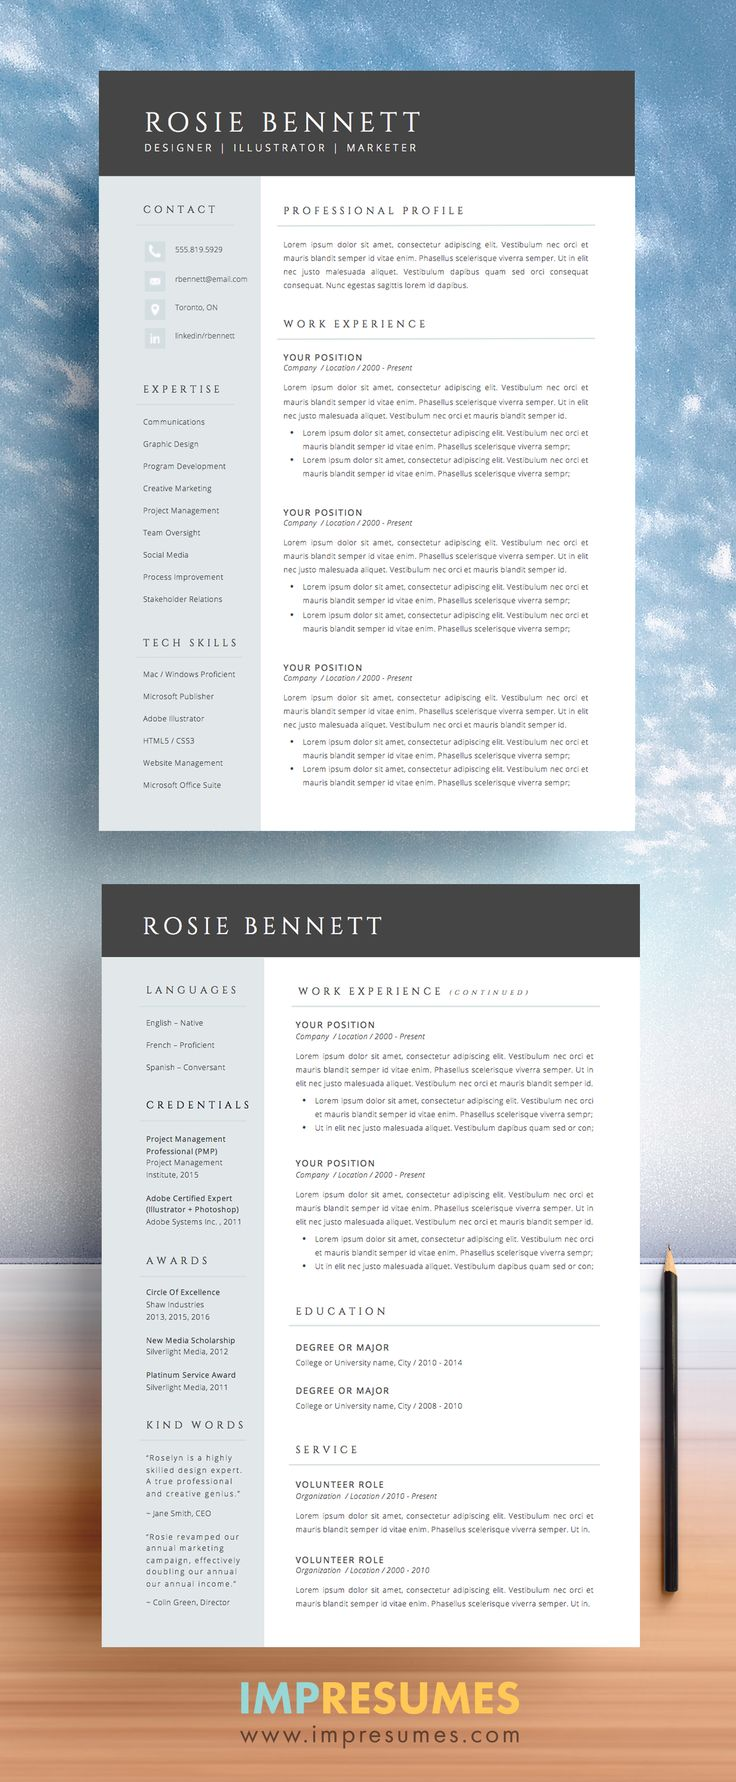 Delighted 1 Page Resume Format Download Big 1 Page Resume Or 2 Rectangular 1 Year Experience Java Resume Format 11x17 Graph Paper Template Youthful 15 Year Old Funny Resume Soft15 Year Old Student Resume 25  Best Ideas About Resume Fonts On Pinterest | Resume, Resume ..